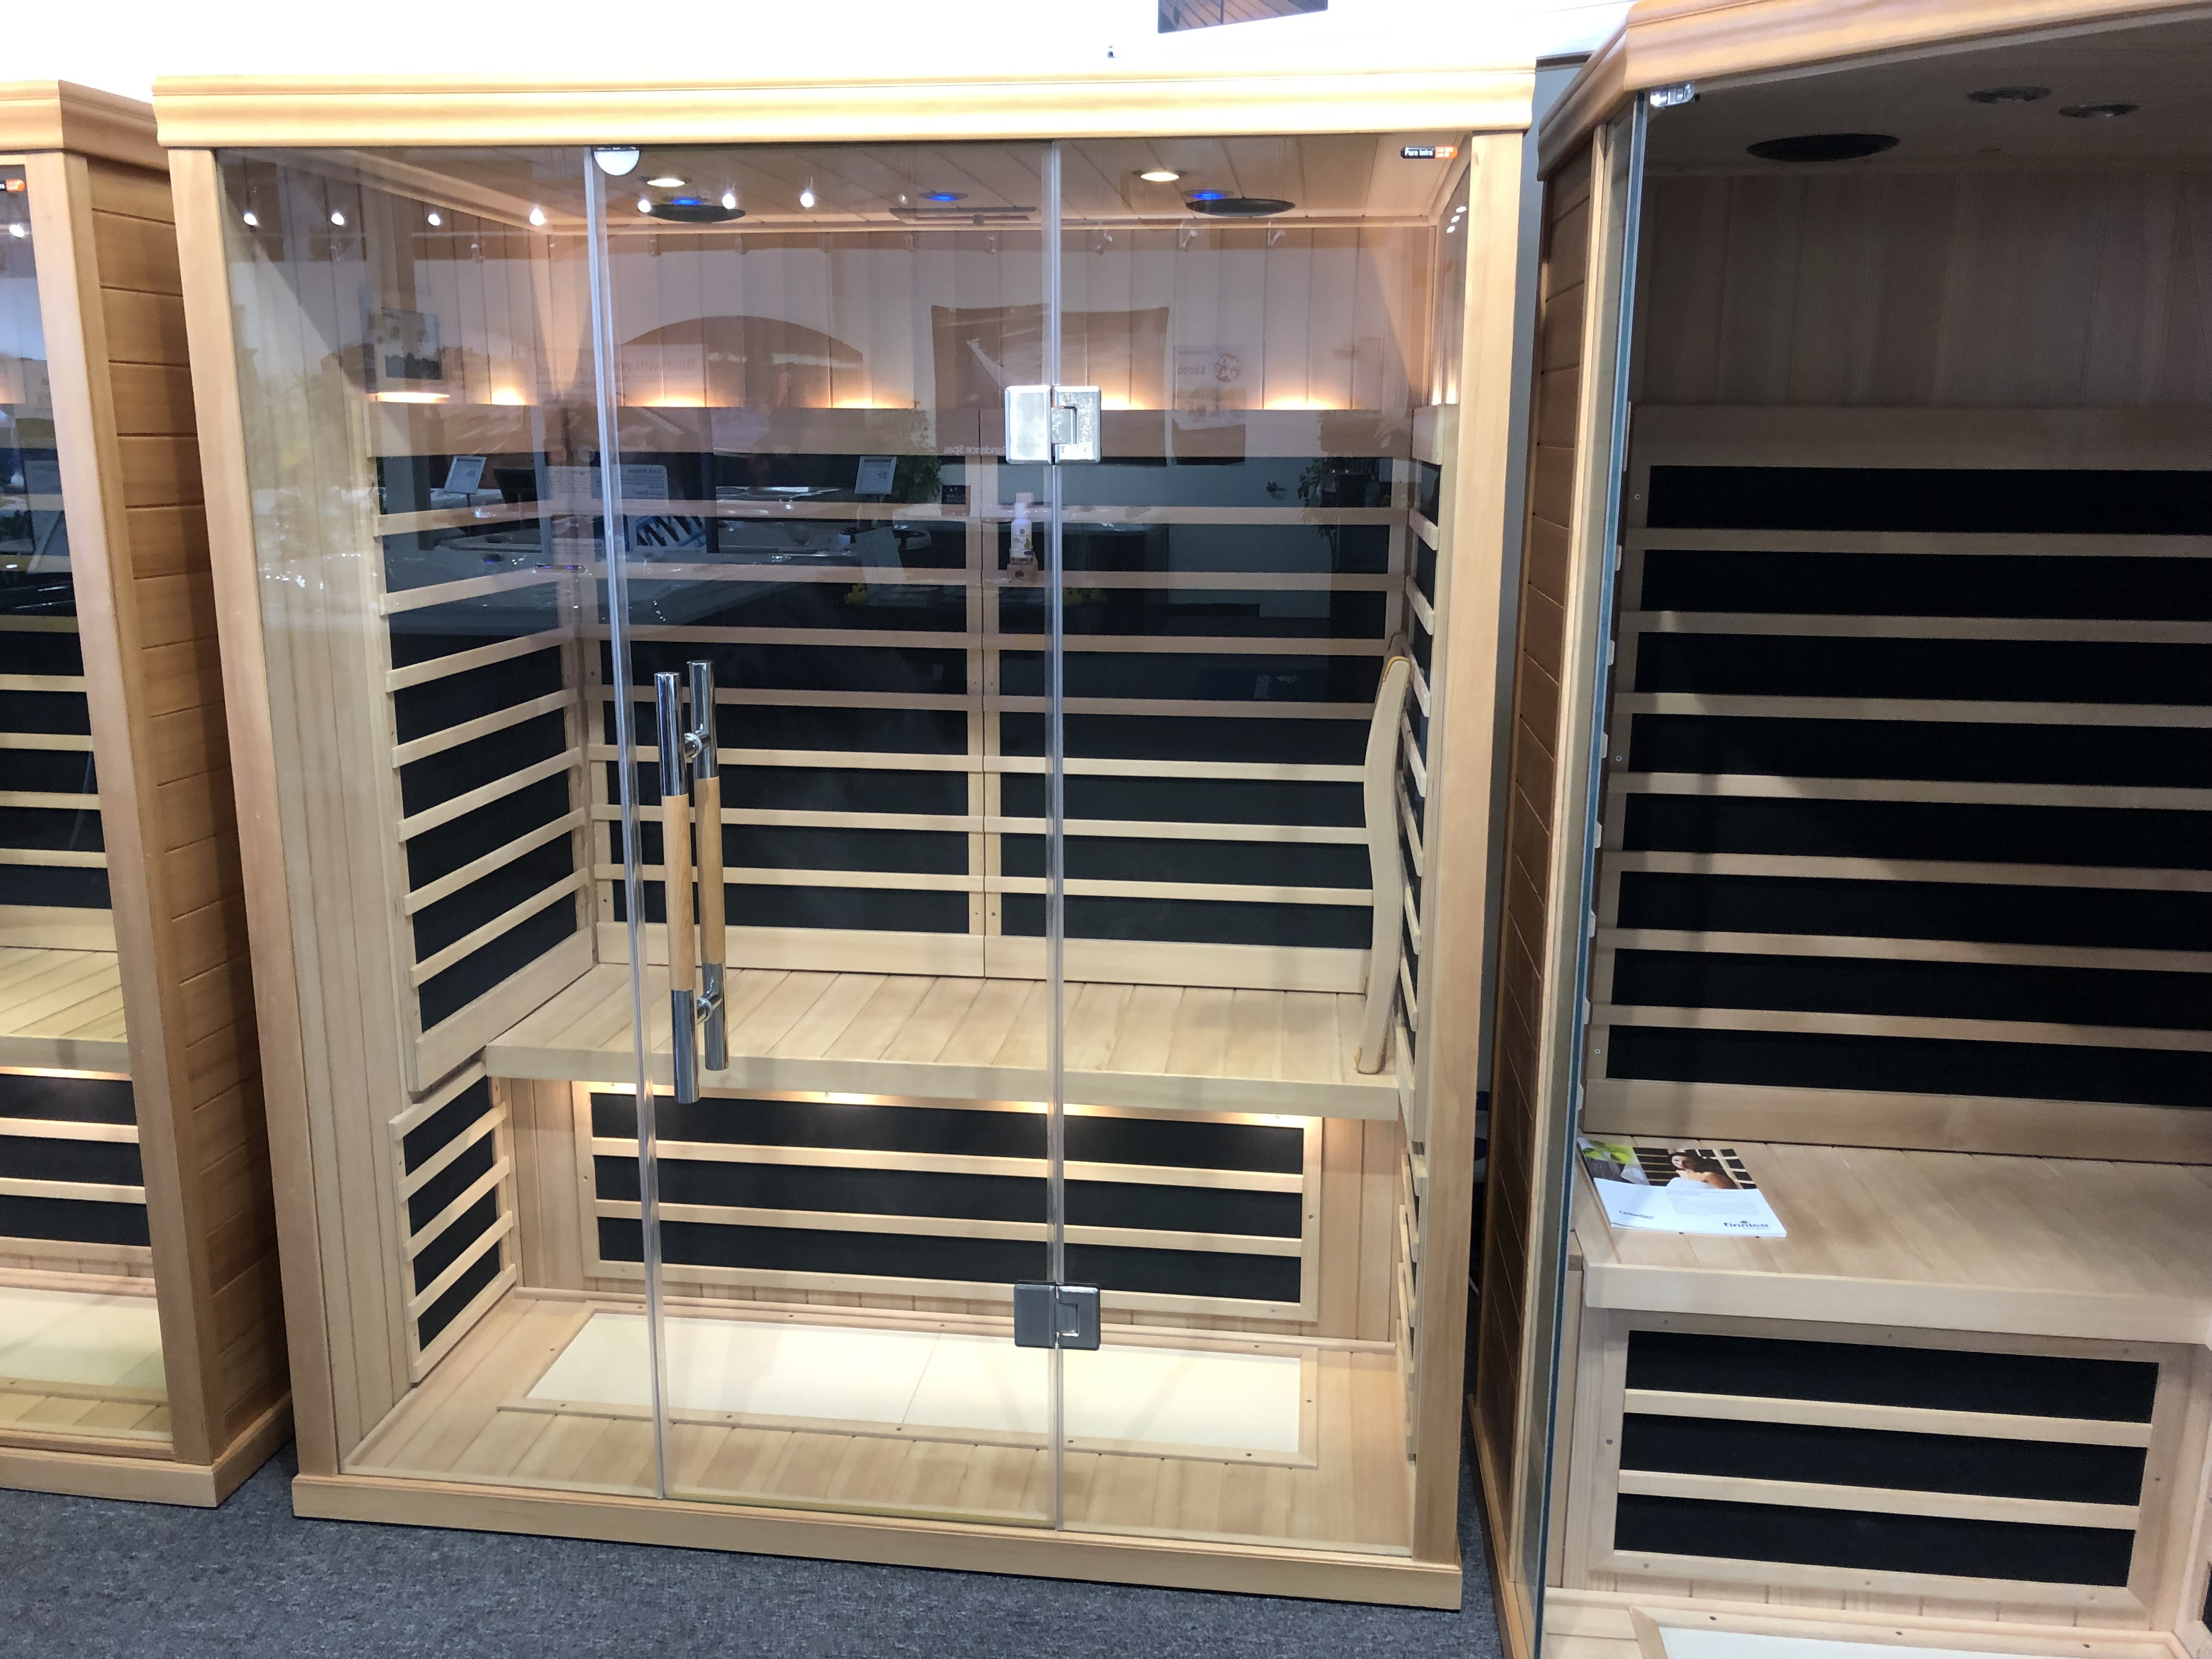 Finnleo Saunas S-825 3 person infrared sauna sale store near me Vaughan Ontario